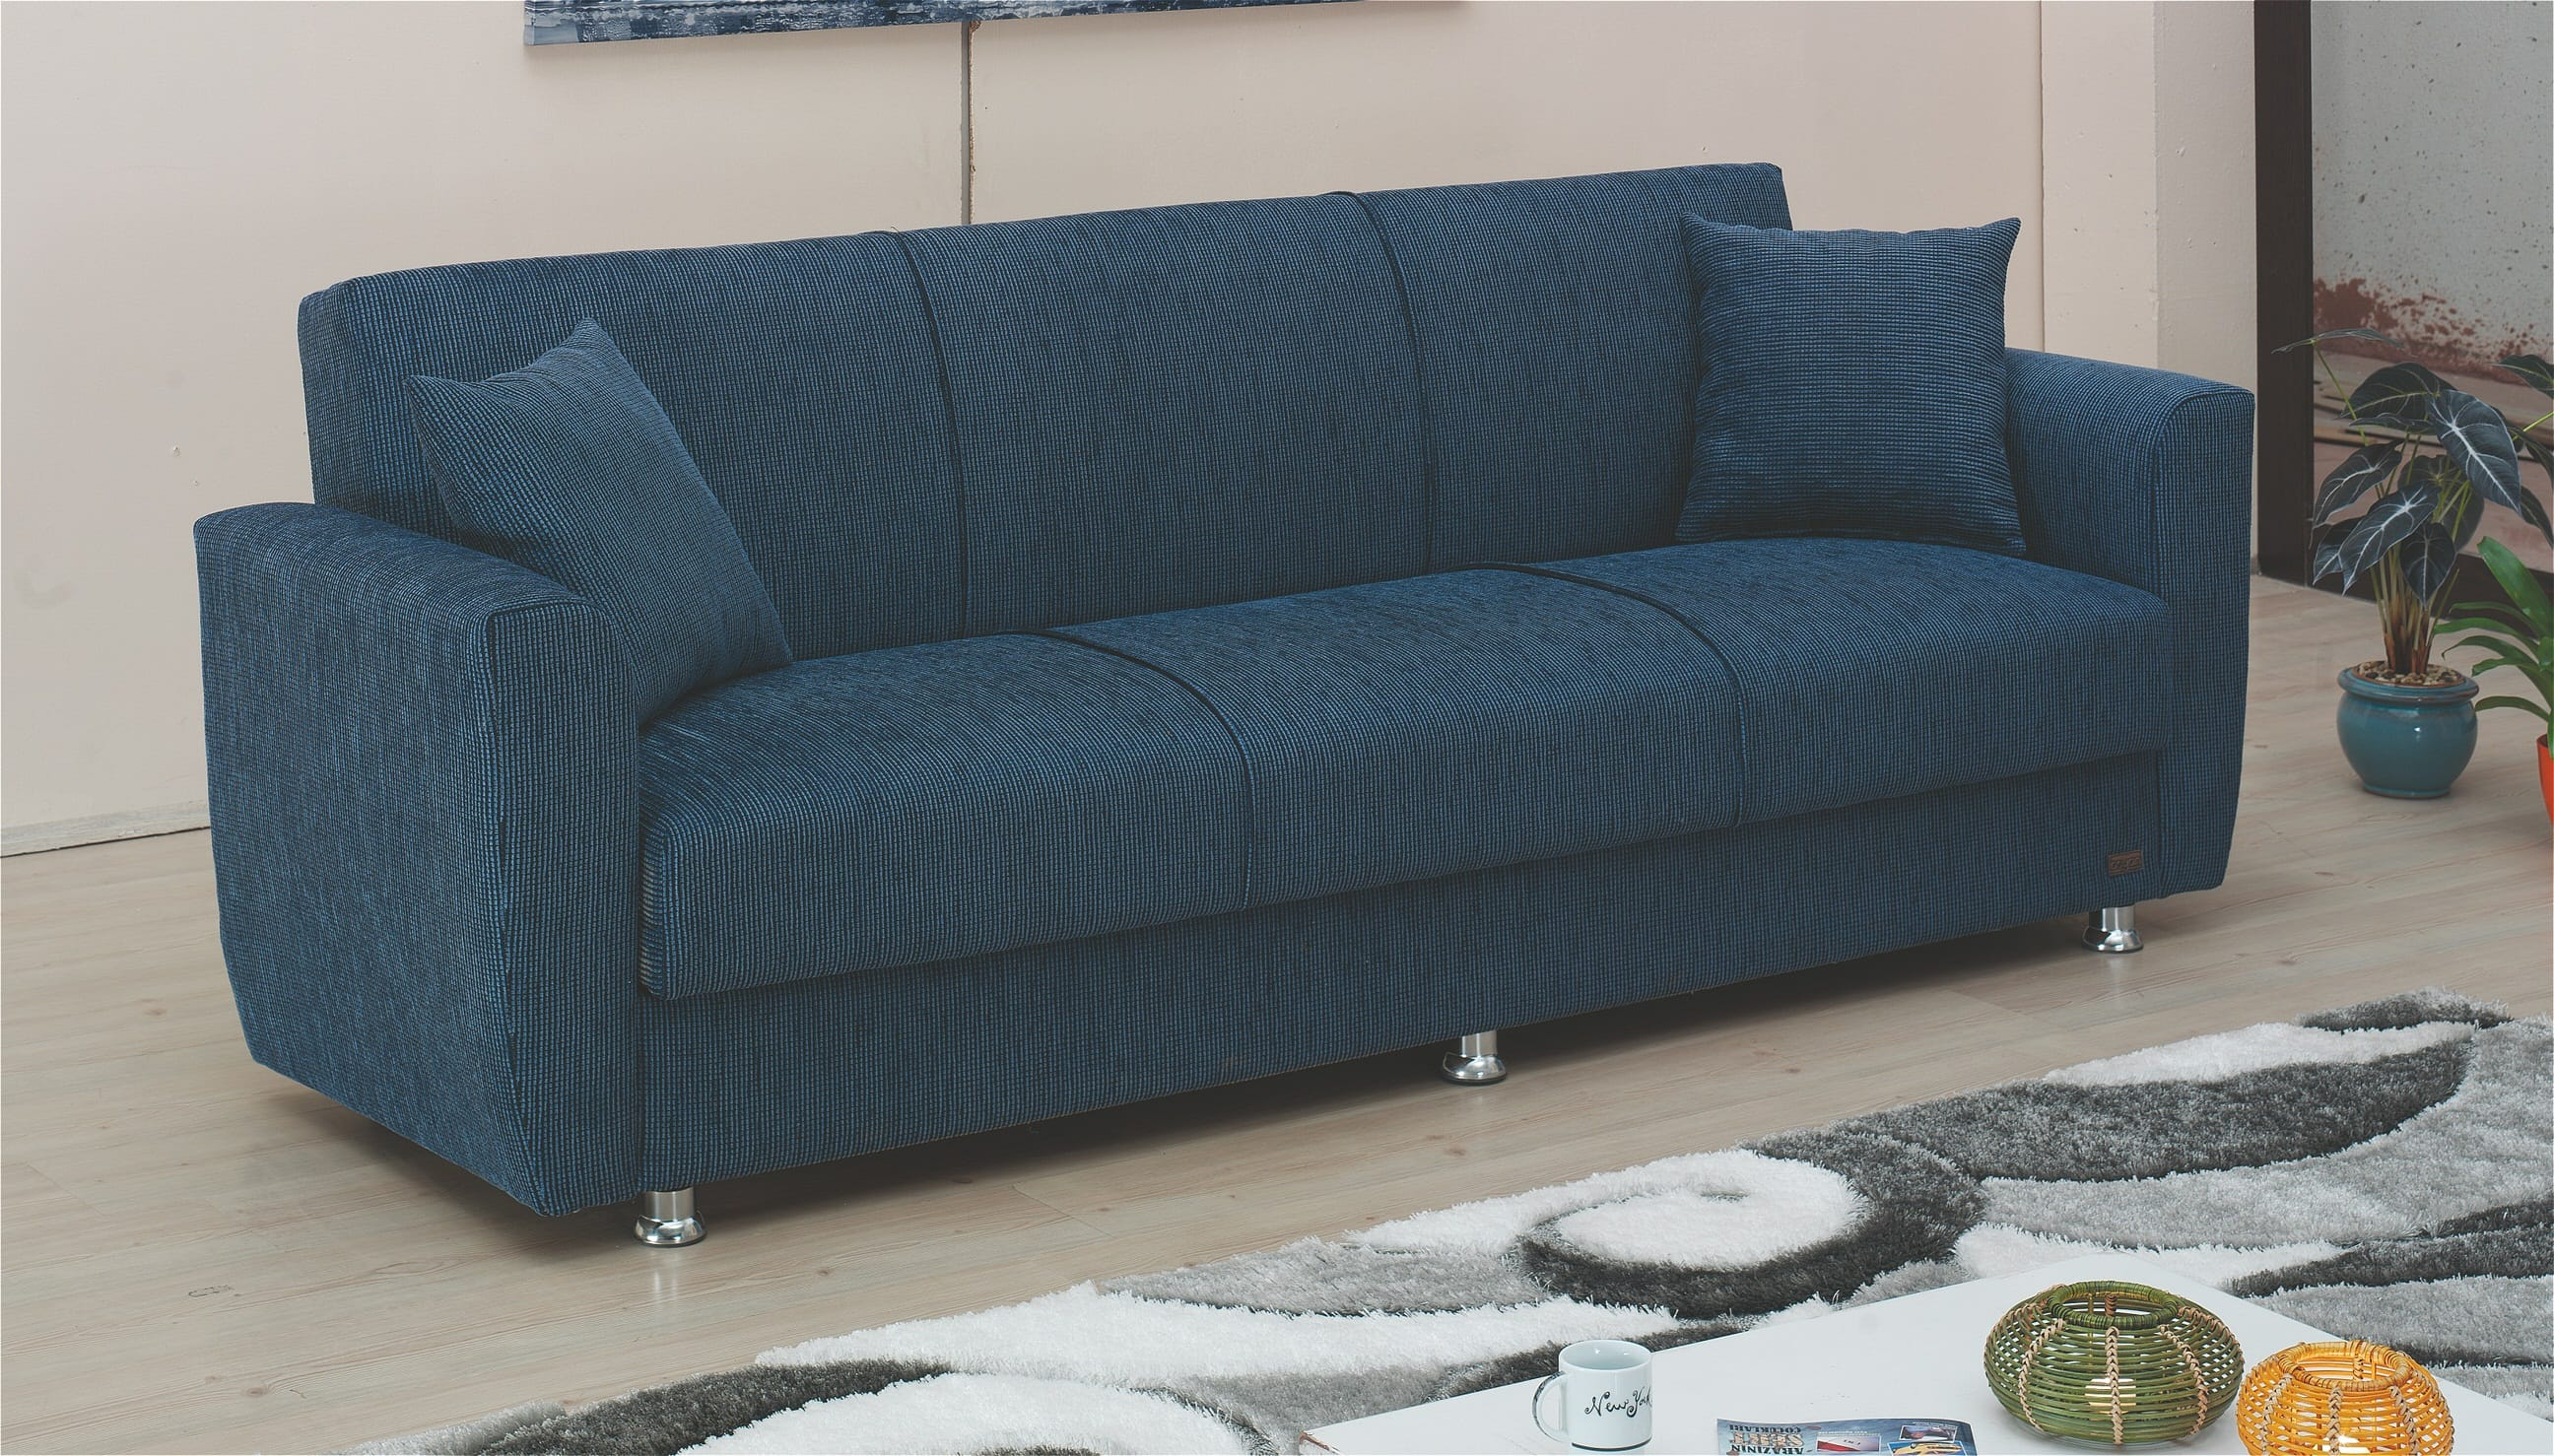 Miami sofa bed by empire furniture usa for Sofa bed usa